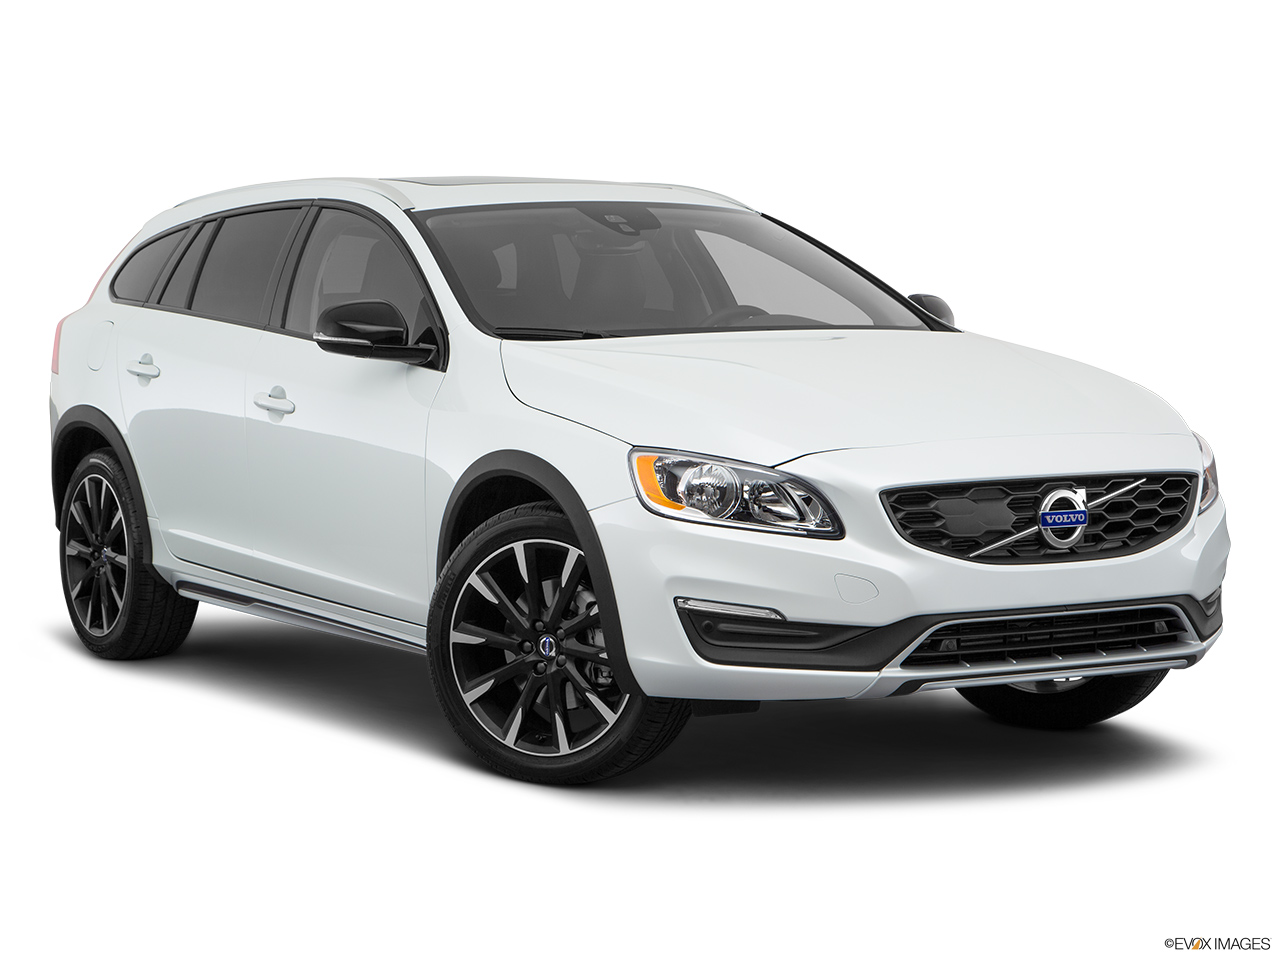 2018 Volvo V60 Cross Country T5 AWD Front passenger 3/4 w/ wheels turned.